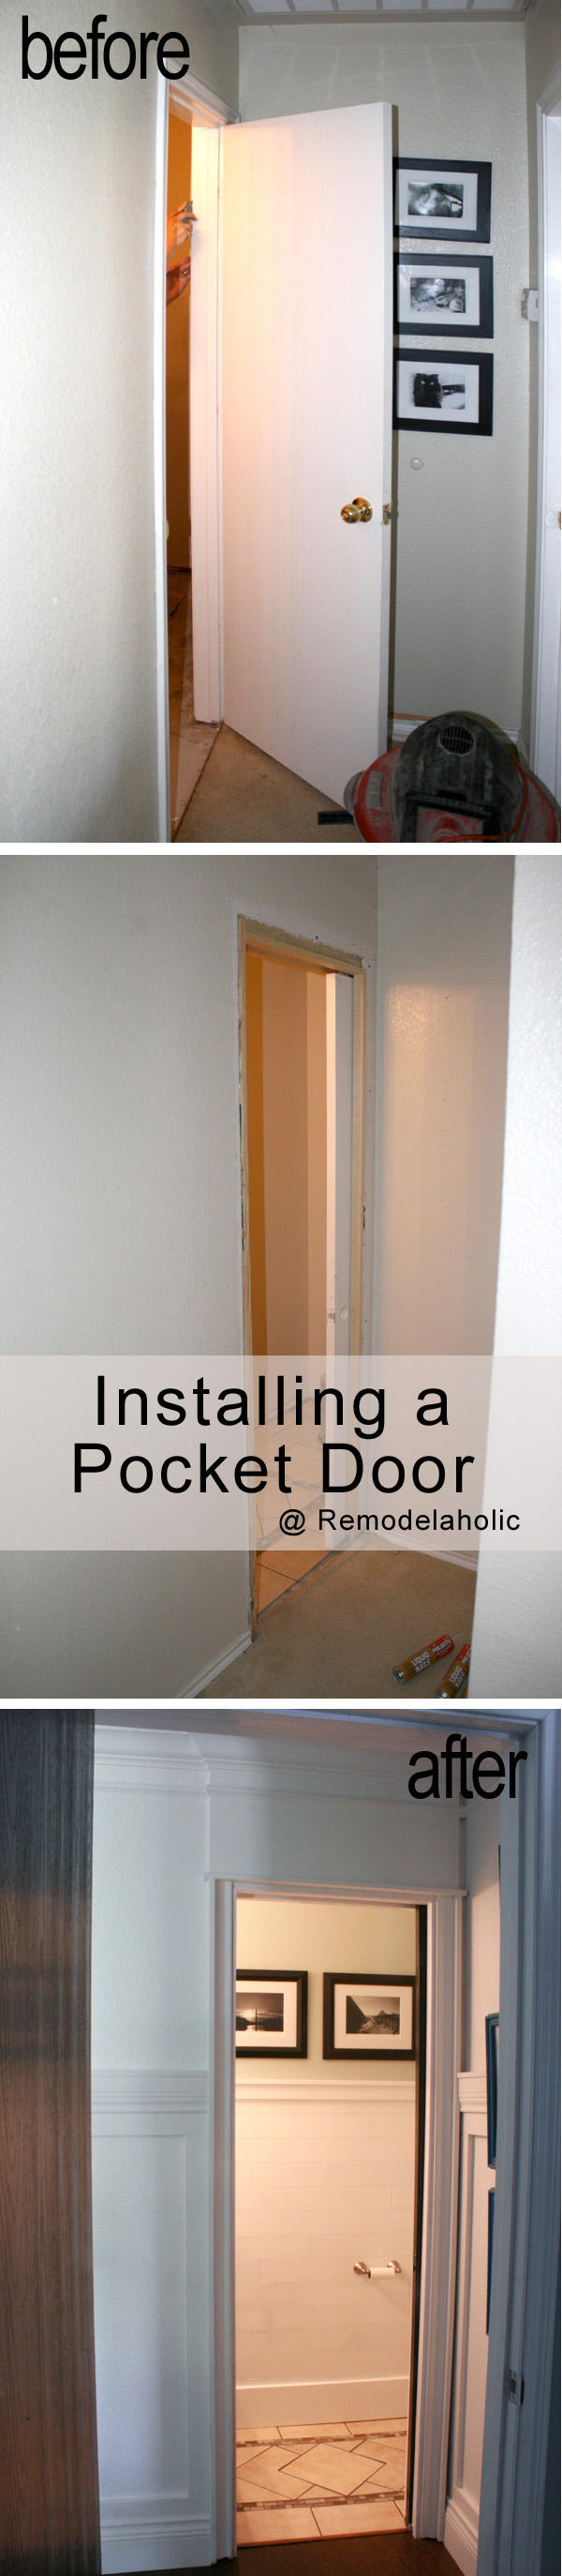 Bathroom pocket doors - Remember